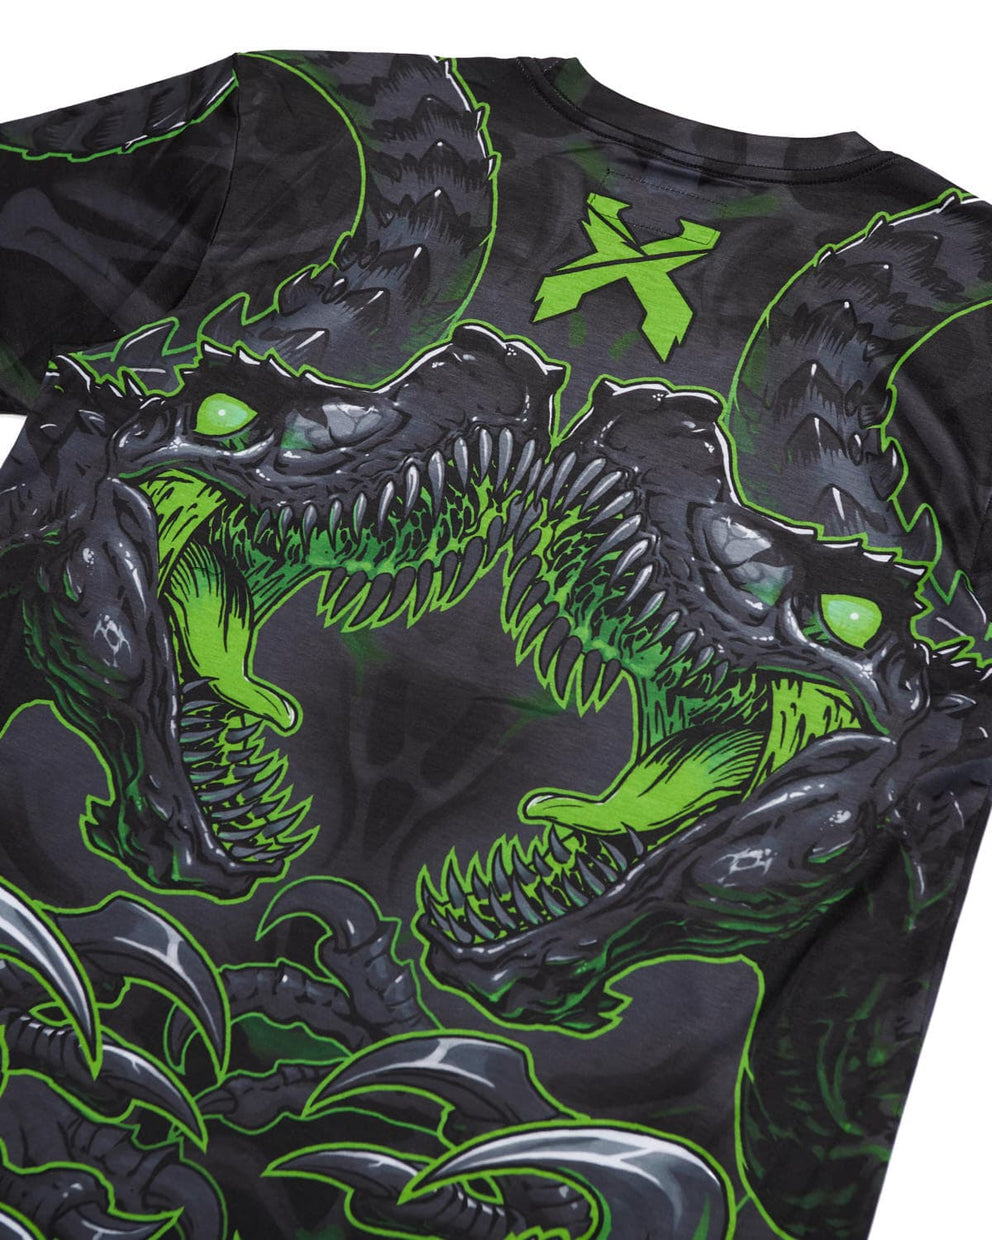 'Raptor Attack' Dye Sub Tee - Green